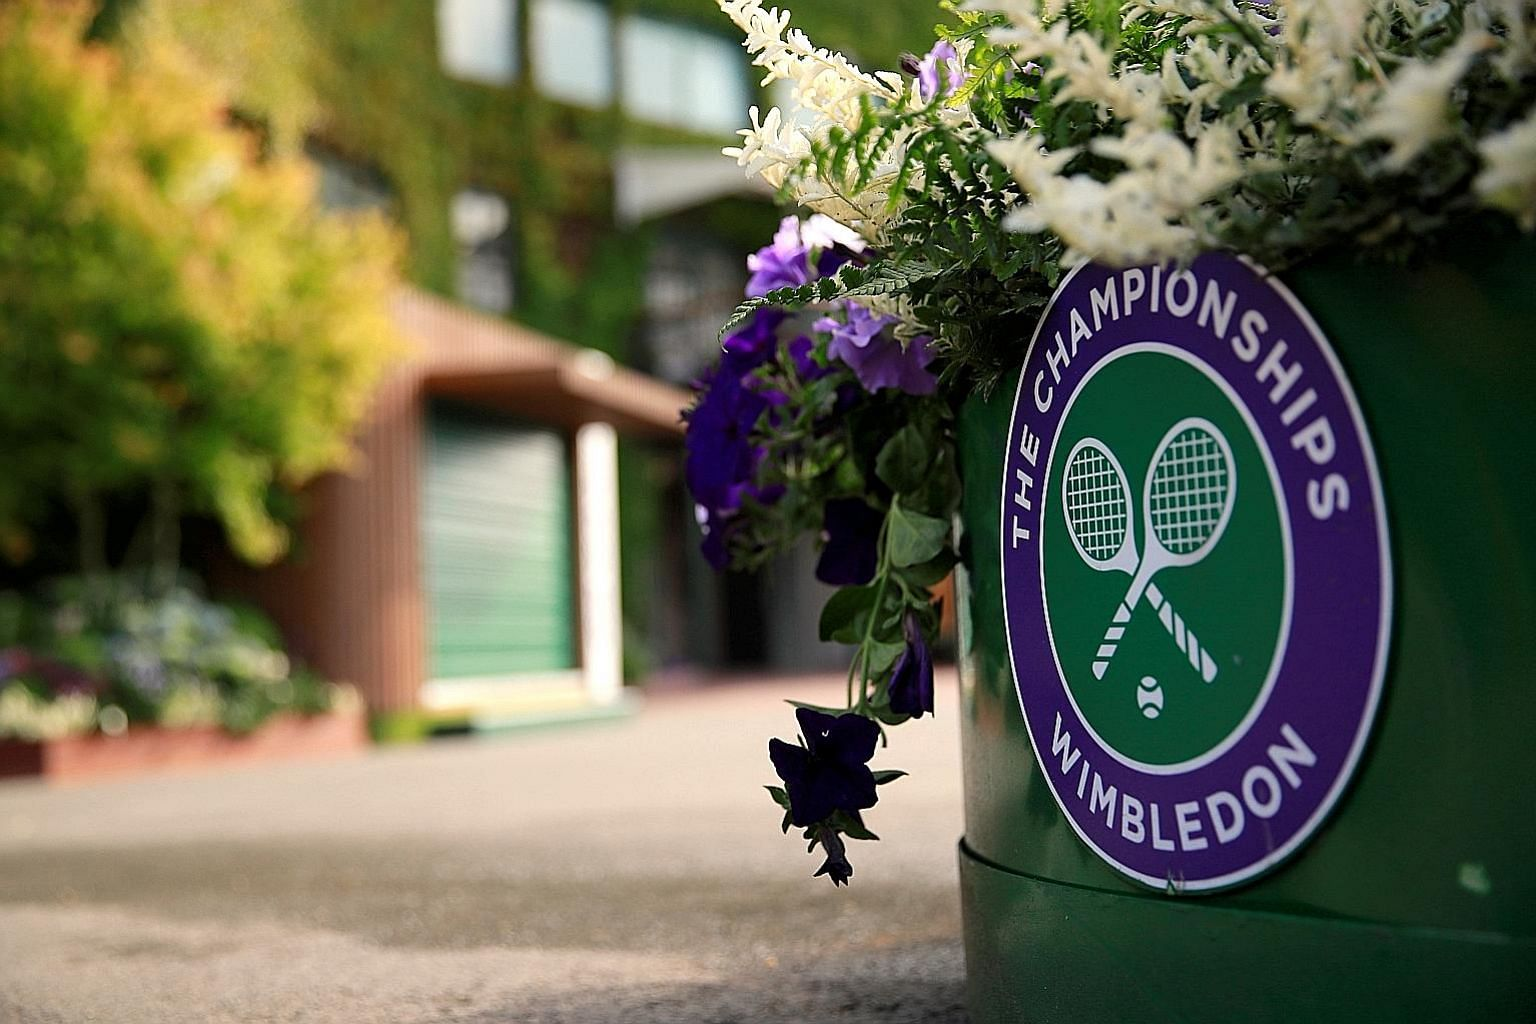 Wimbledon, which is set to get over $194 million in insurance payouts because it was cancelled owing to the coronavirus pandemic, plans to hand each player who would have made the singles main draw $43,800 each. The organisers will also distribute fu